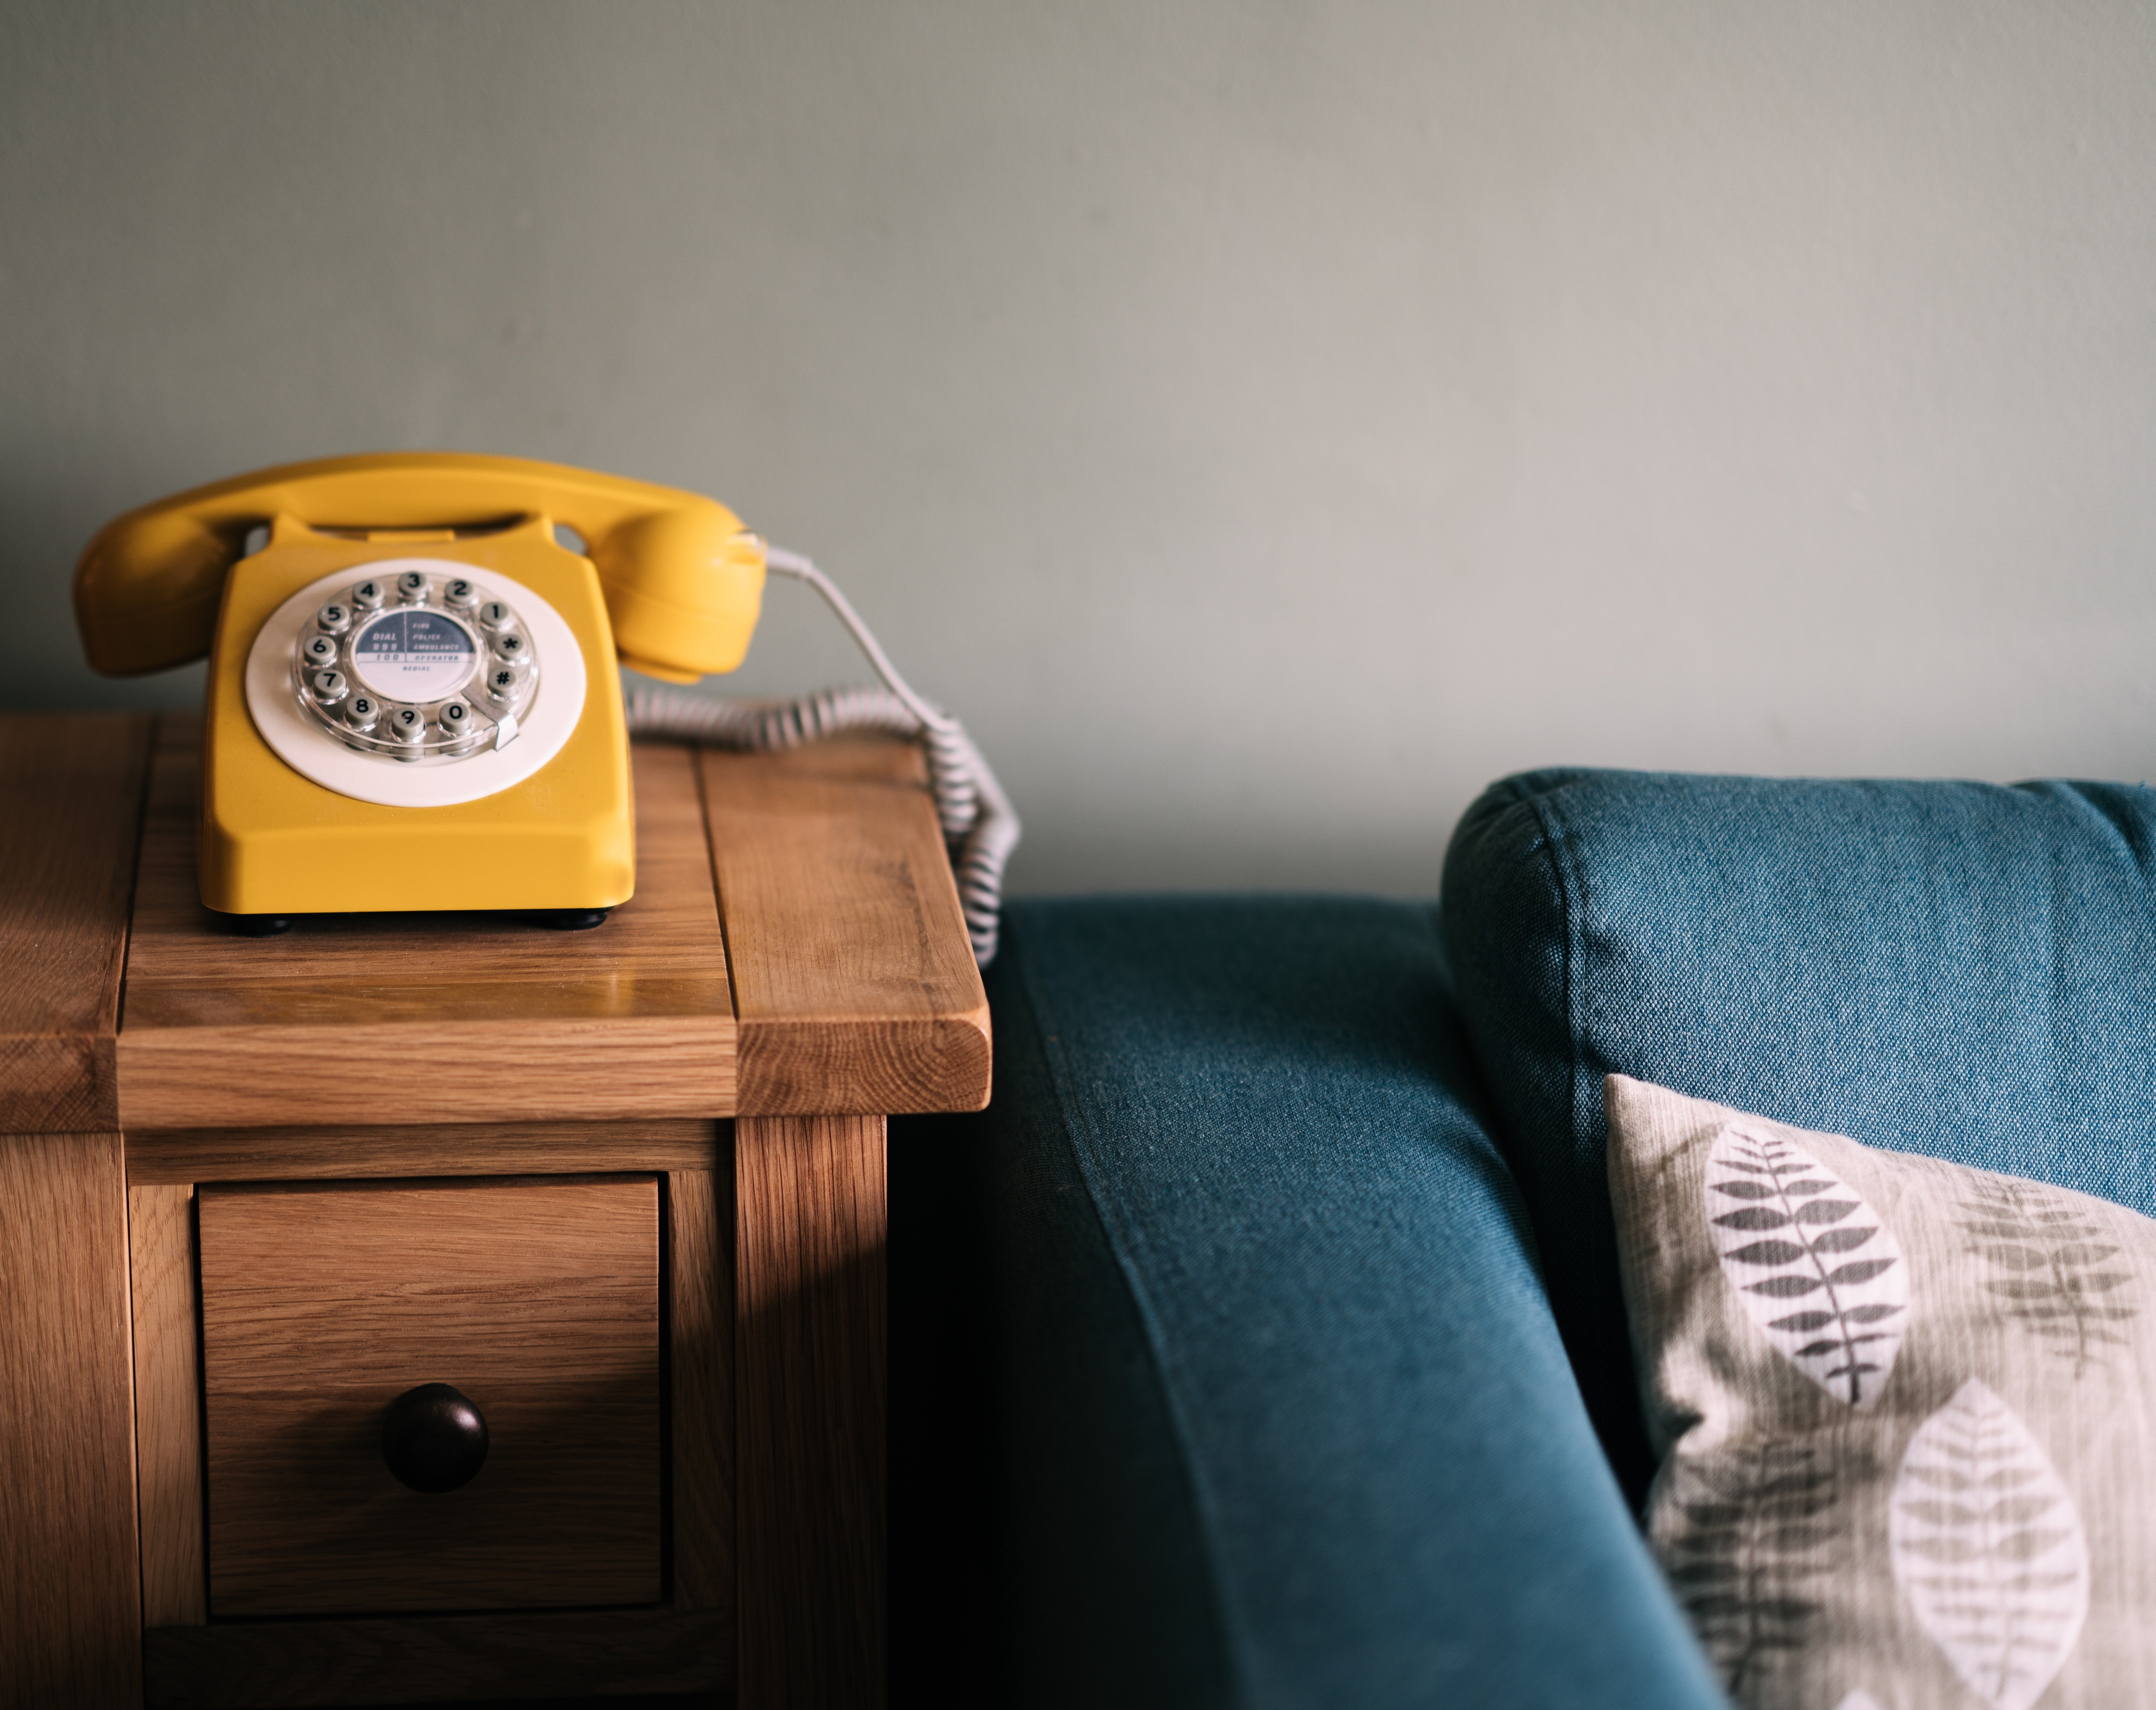 A yellow telephone on a wooden table beside a blue couch. | Source: Unplash